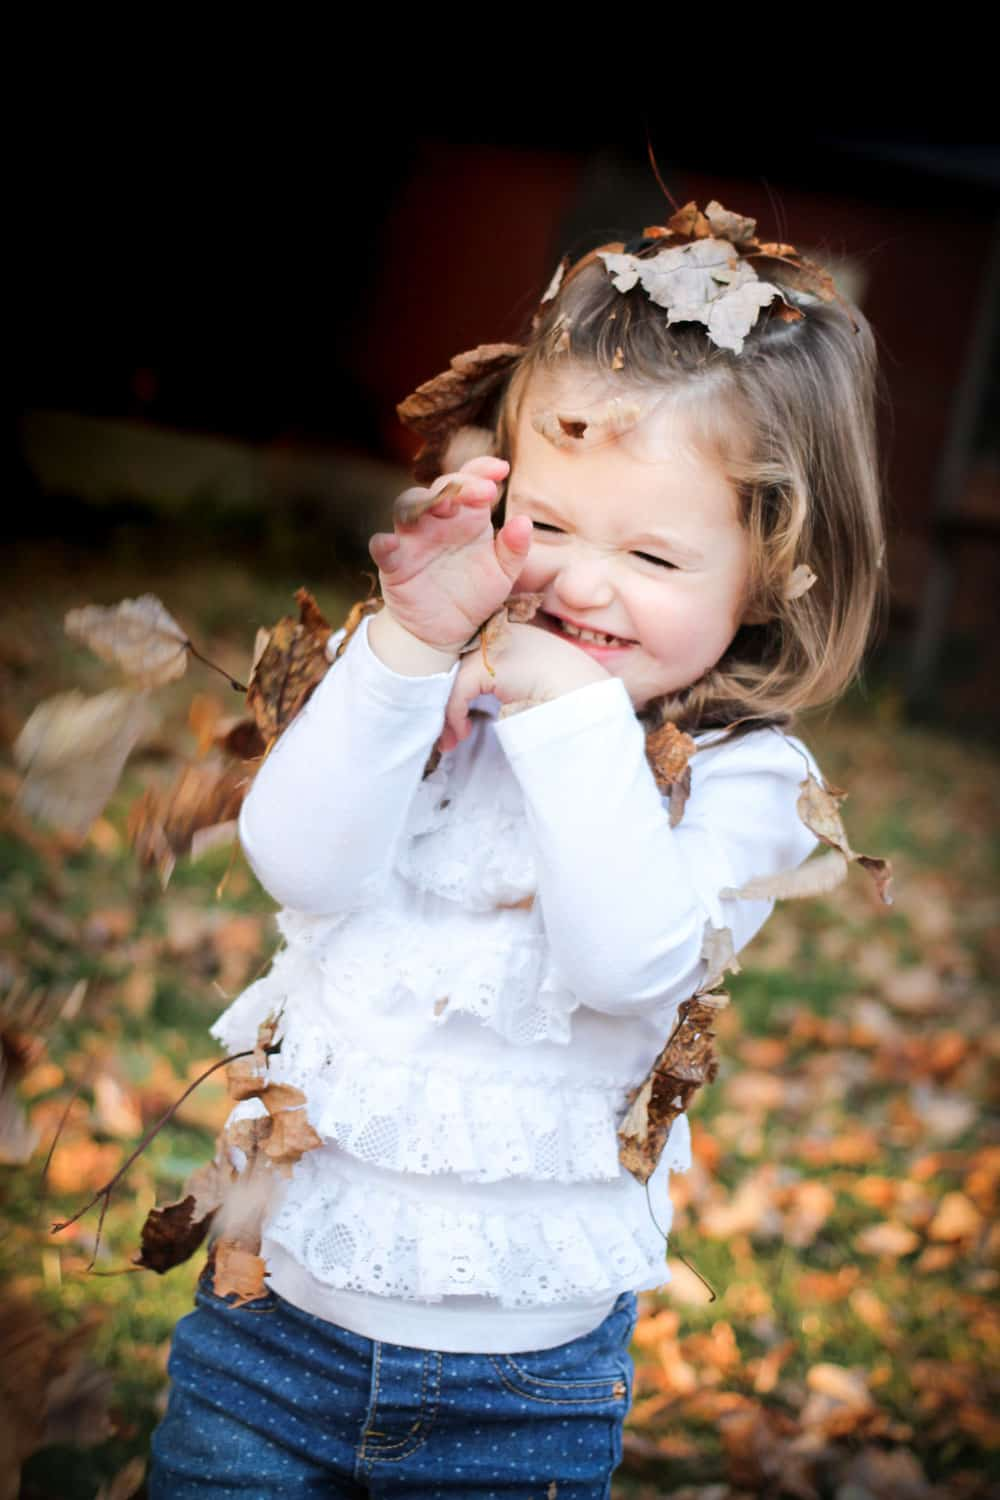 5 Quick Tips To Help You Take Better Pictures of Your Kids